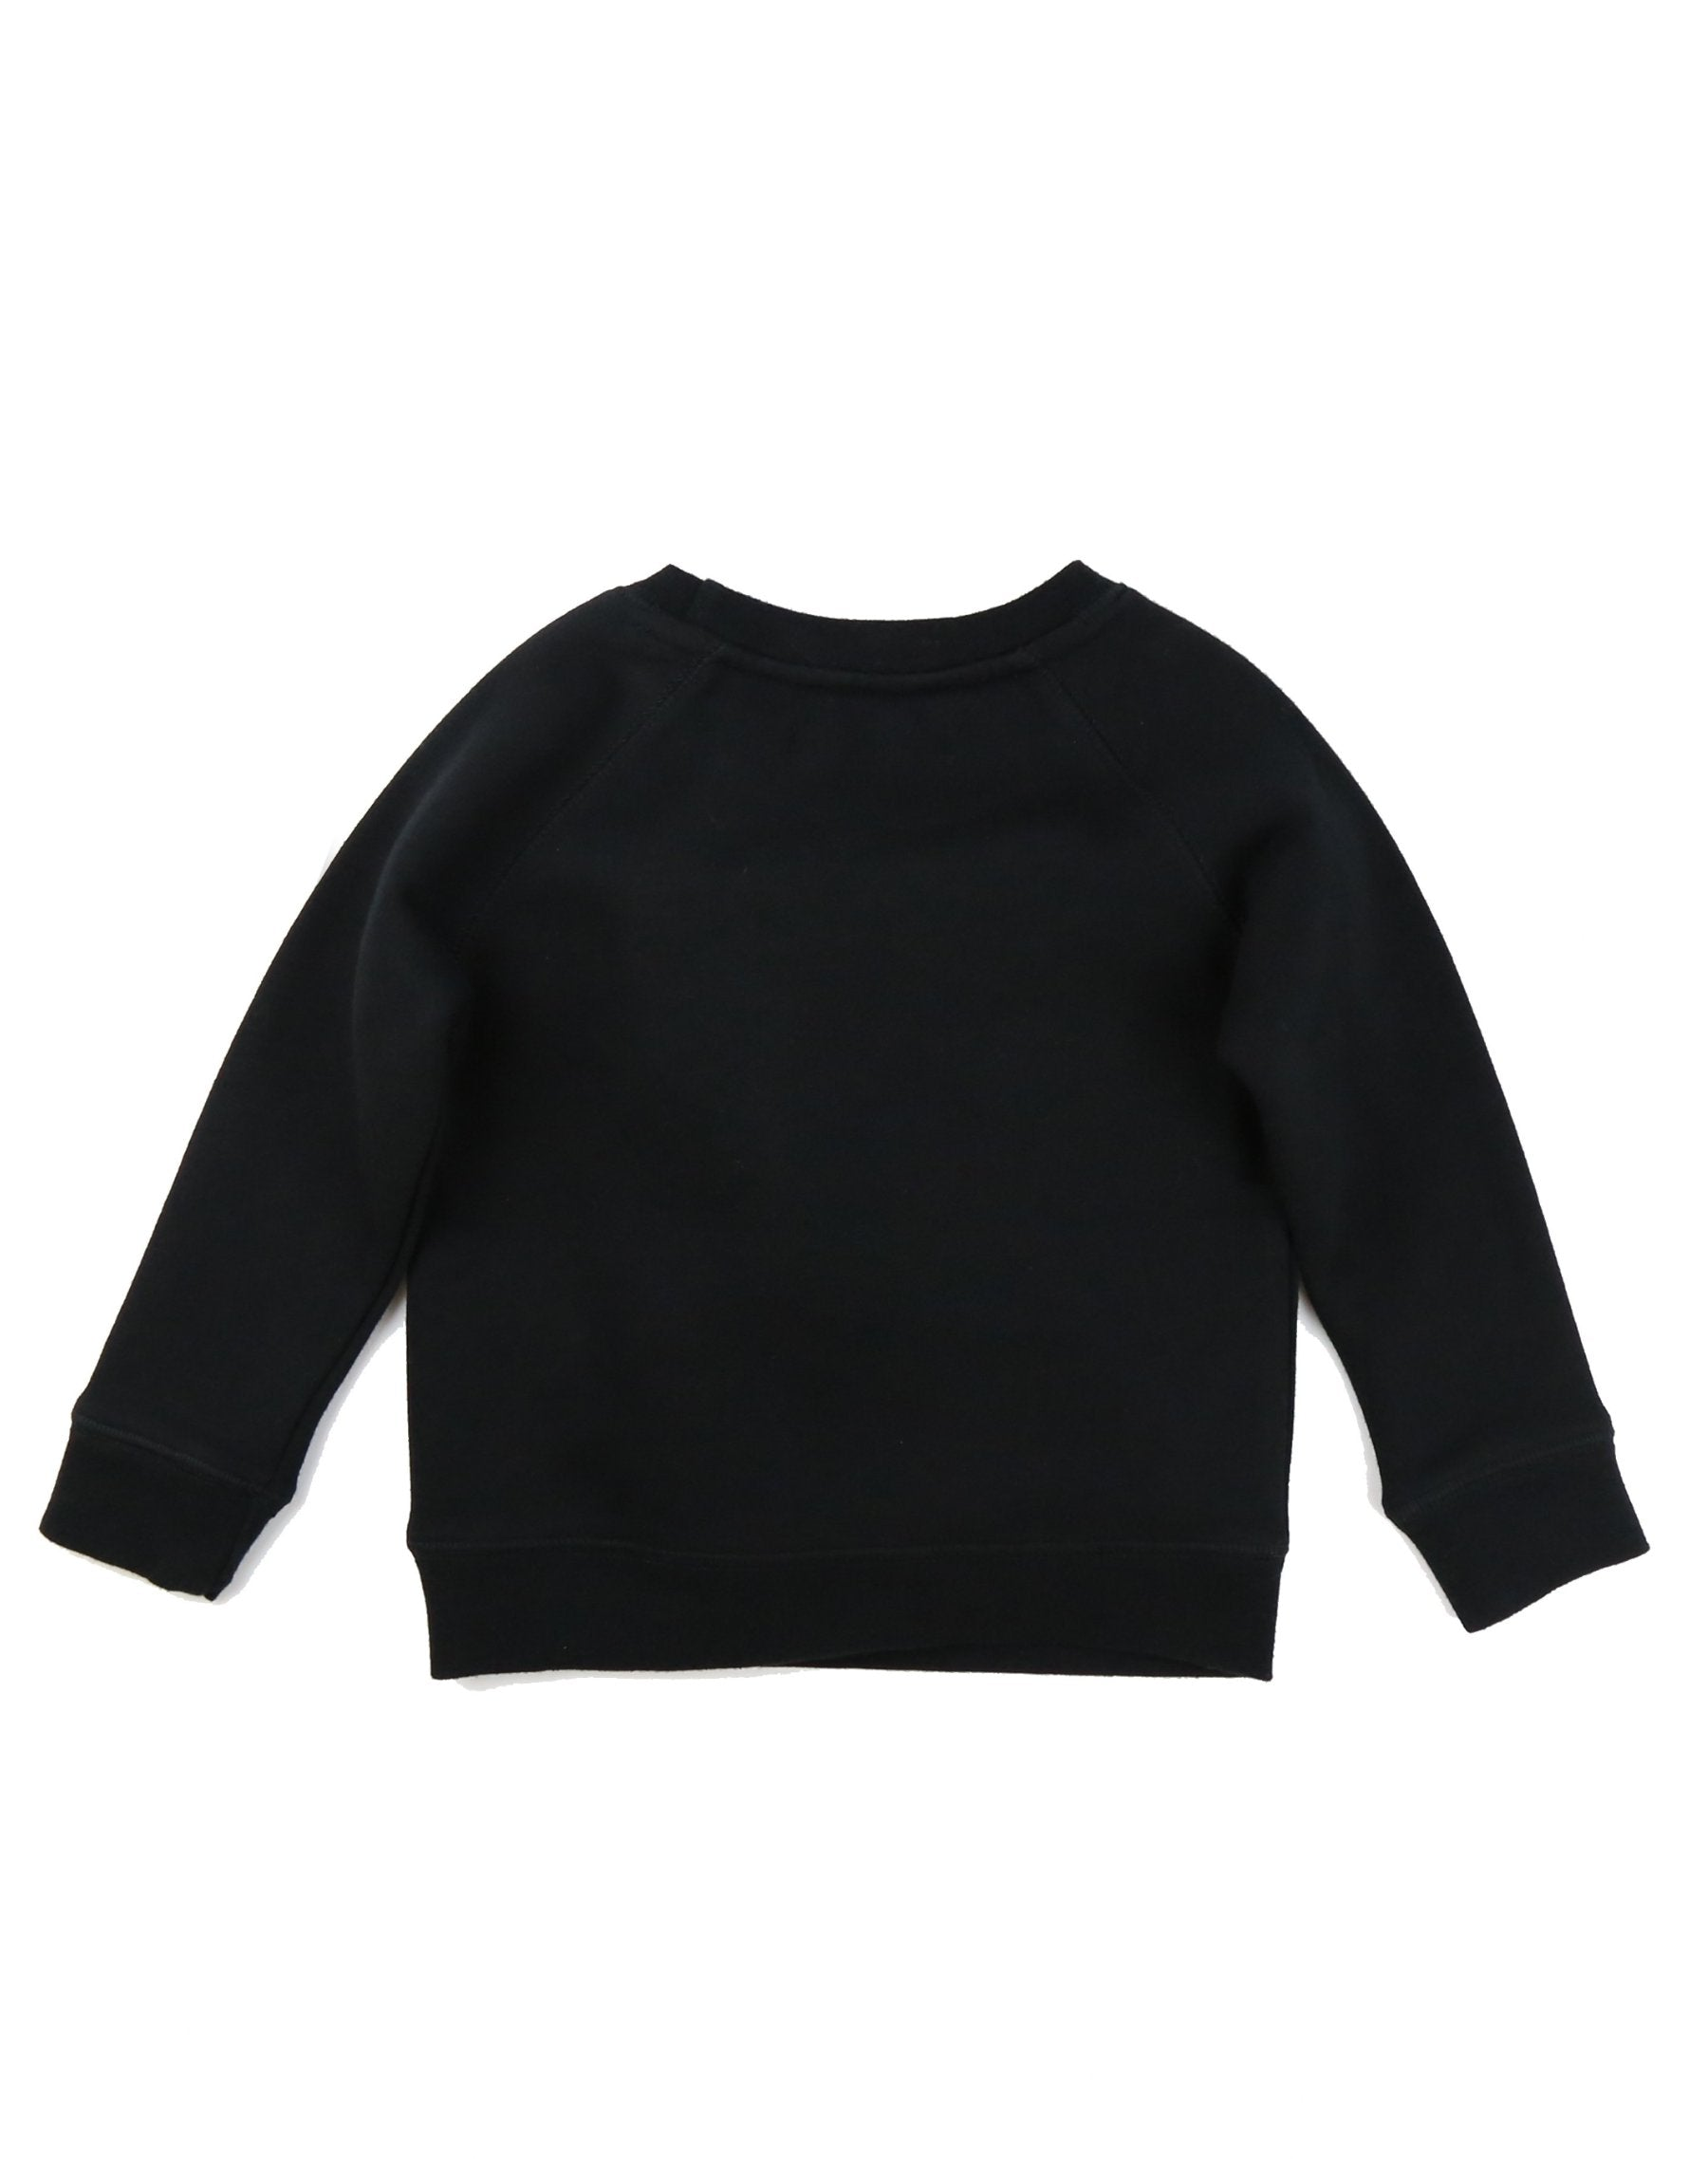 Photo of the back of the Babes Supporting Babes Little Babes classic crew neck sweatshirt in black by Brunette the Label.